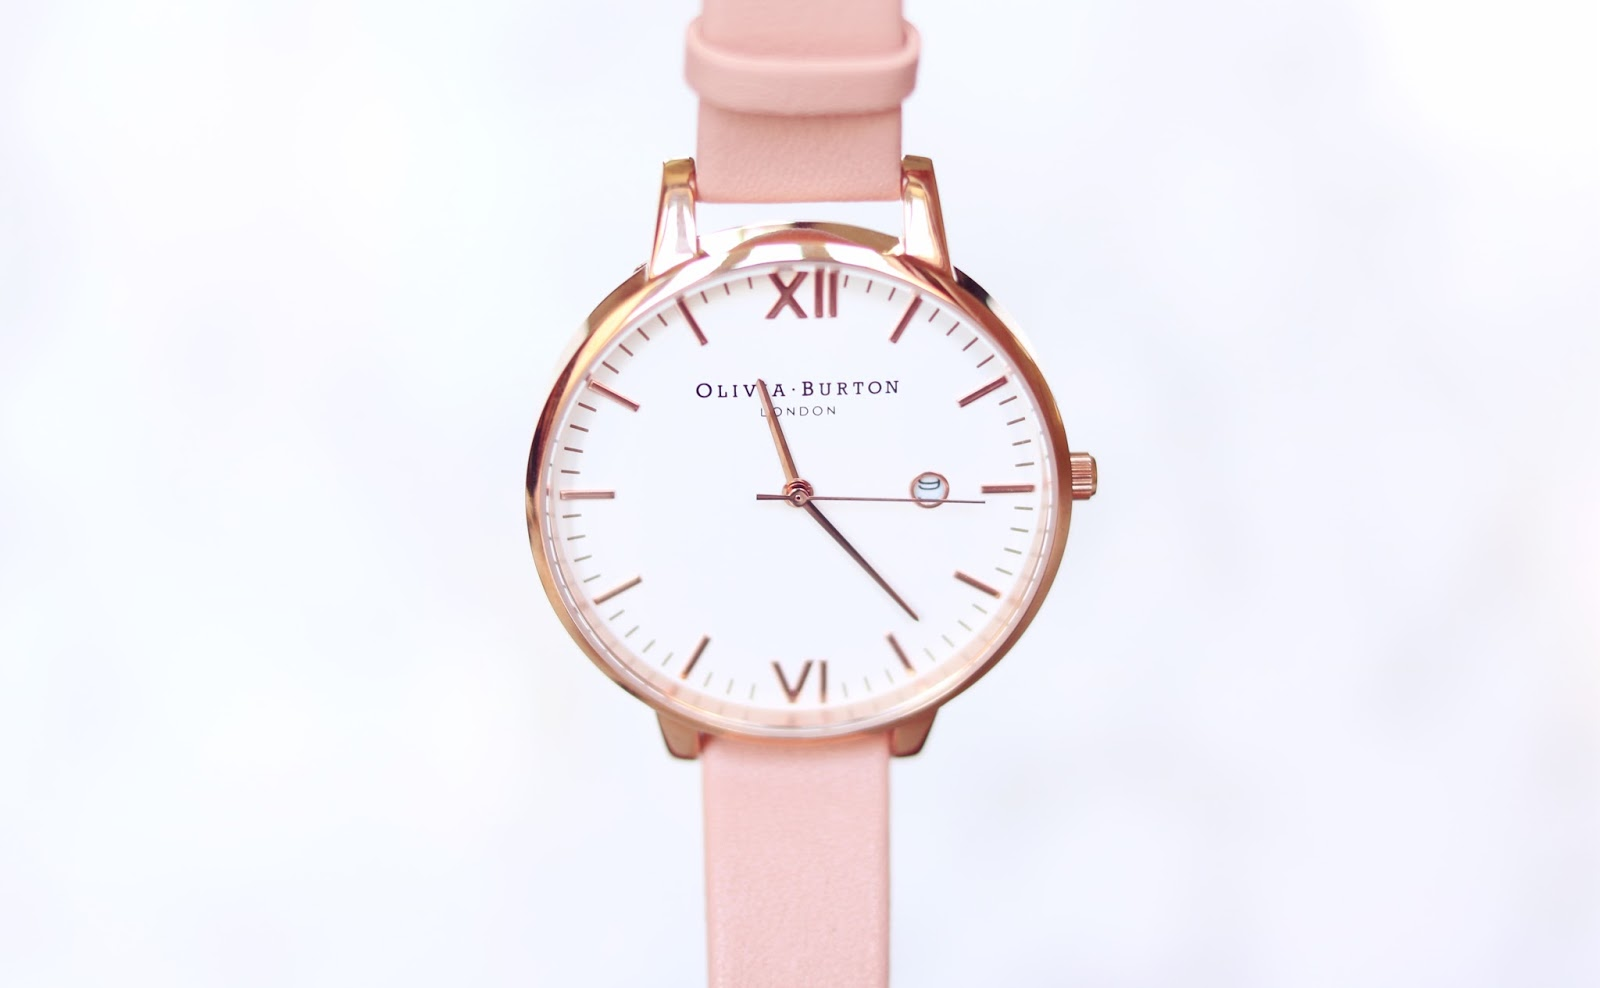 Olivia Burton Rose Gold and Dusty Pink watch from the Timeless Collection